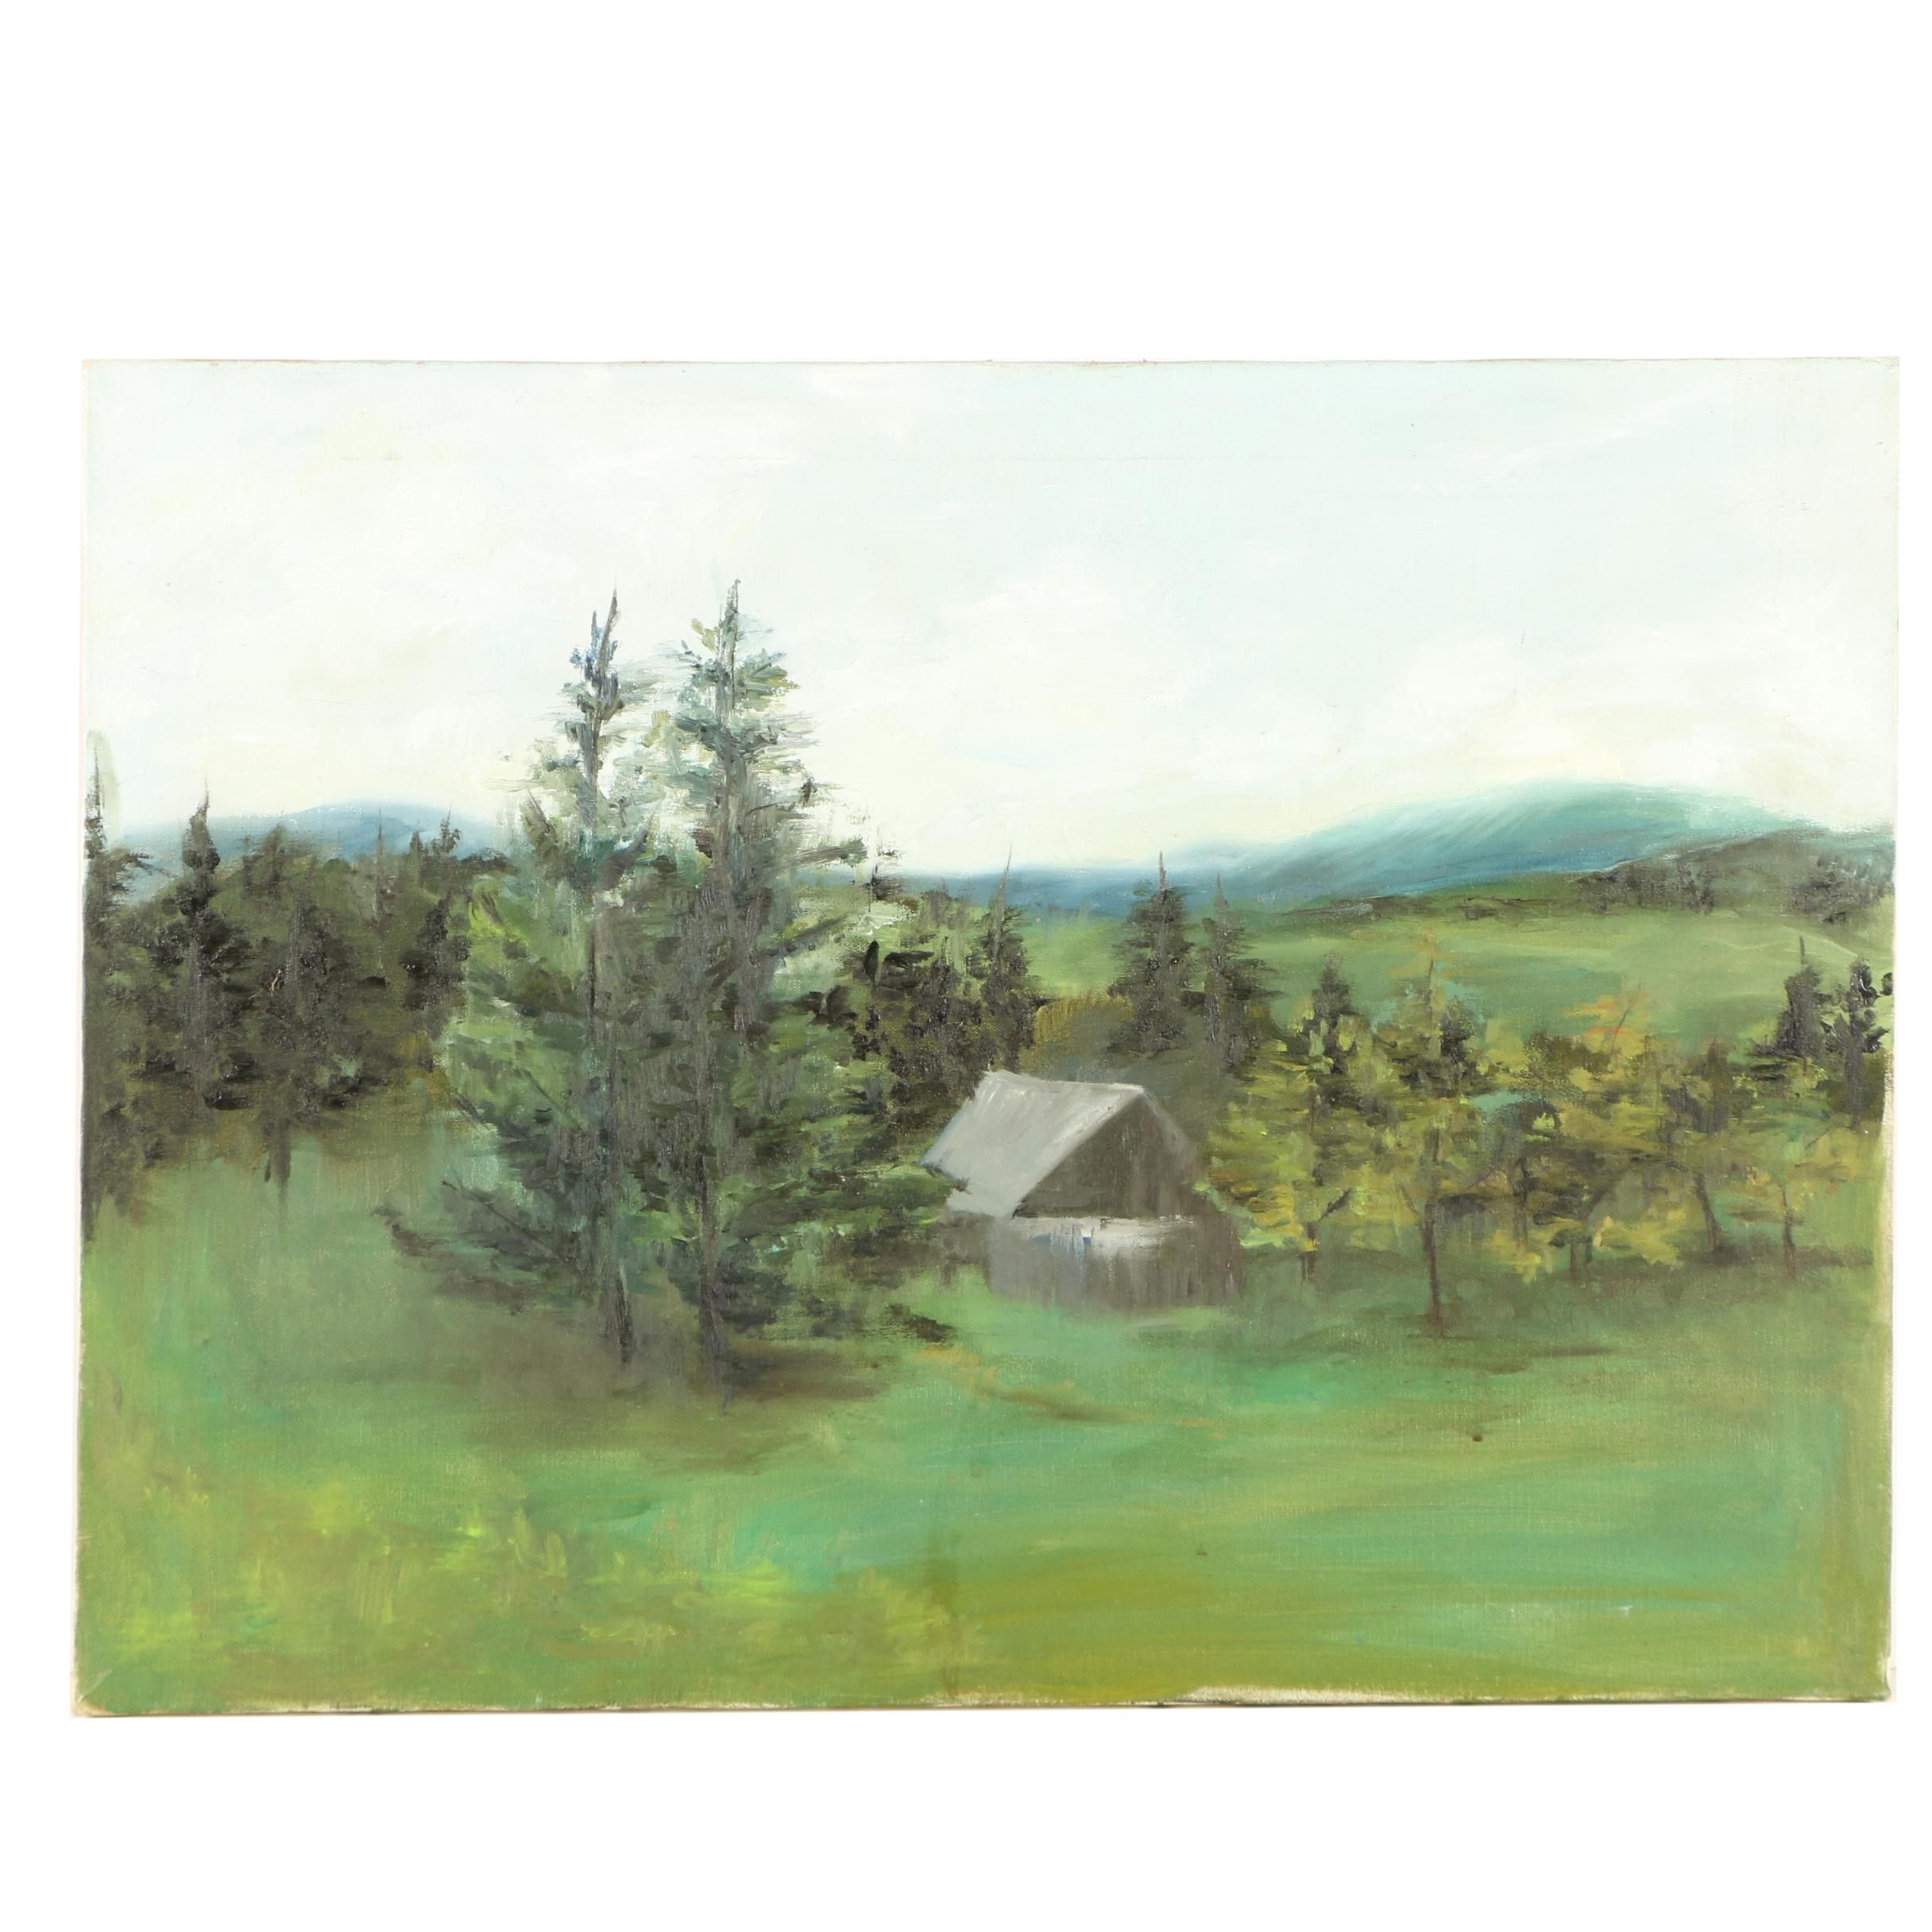 Oil Painting of Cabin